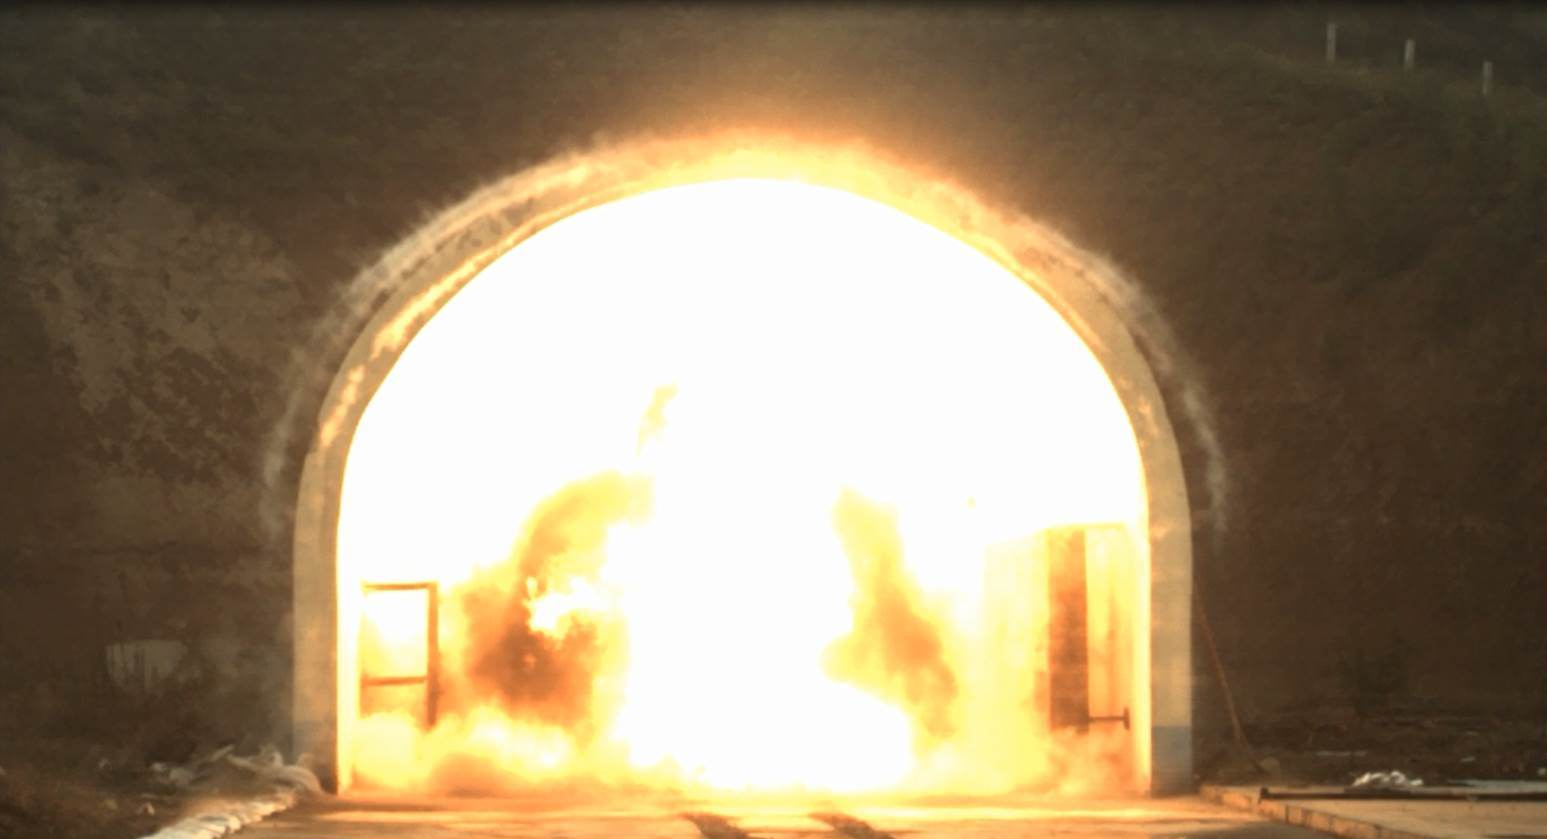 FUCARE Blast Damper tested by defense lab